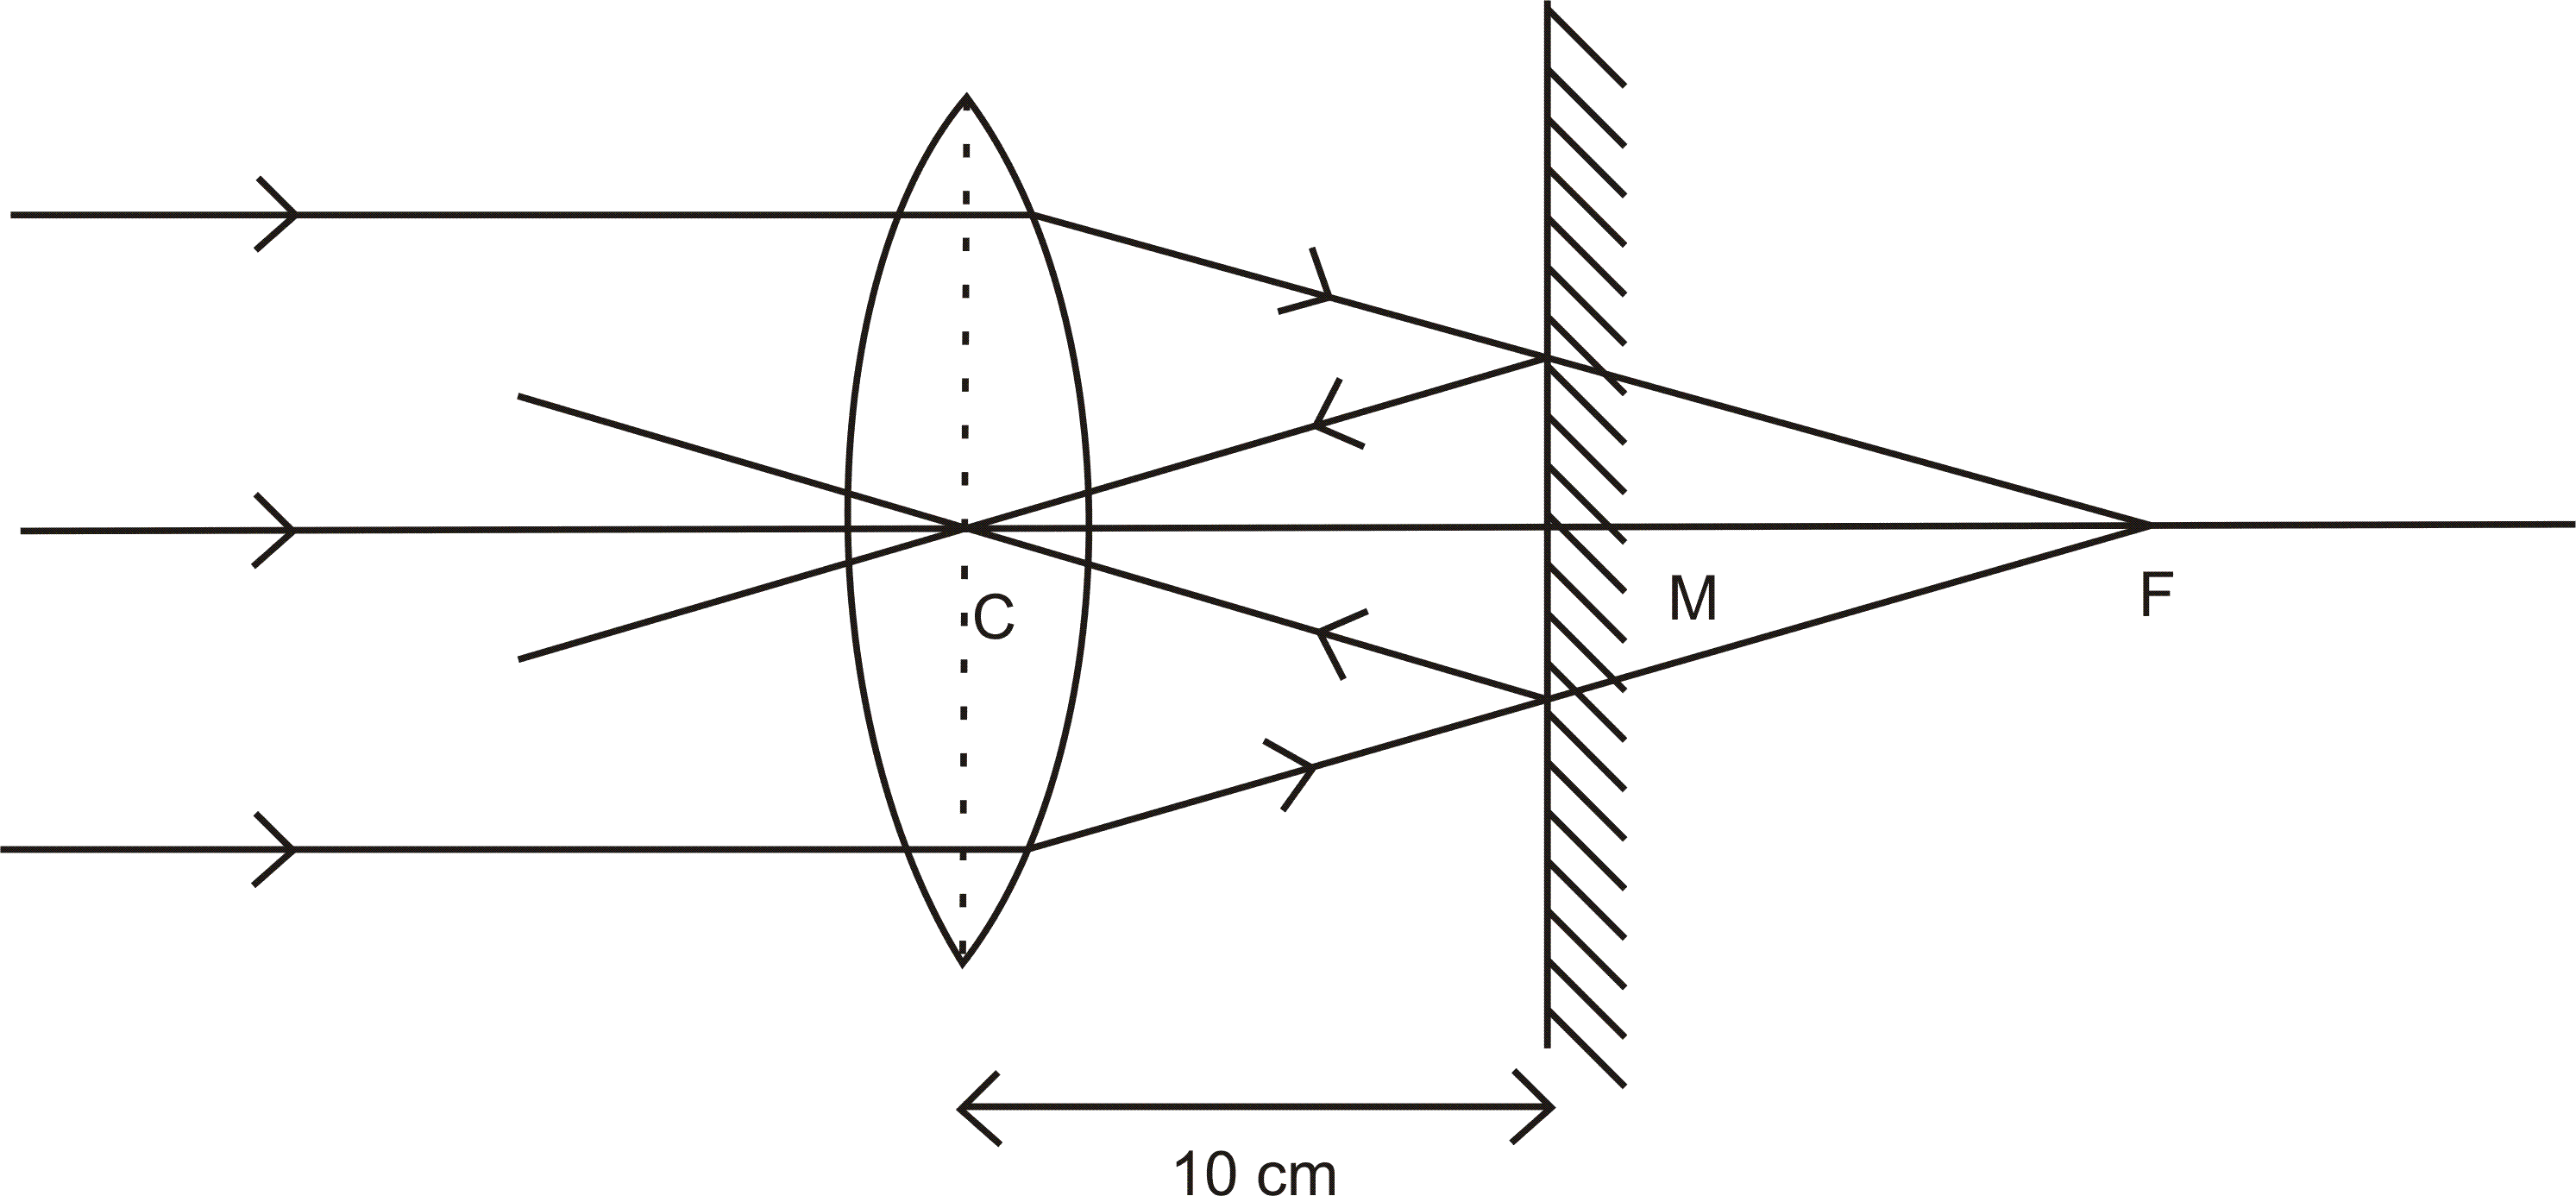 The distance between a convex lens and a plane mirror is 10 cmthe the parallel rays incident on the convex lens converge at the focusf of the lens at the mirror after reflection forms an image at the optical centre of pooptronica Choice Image